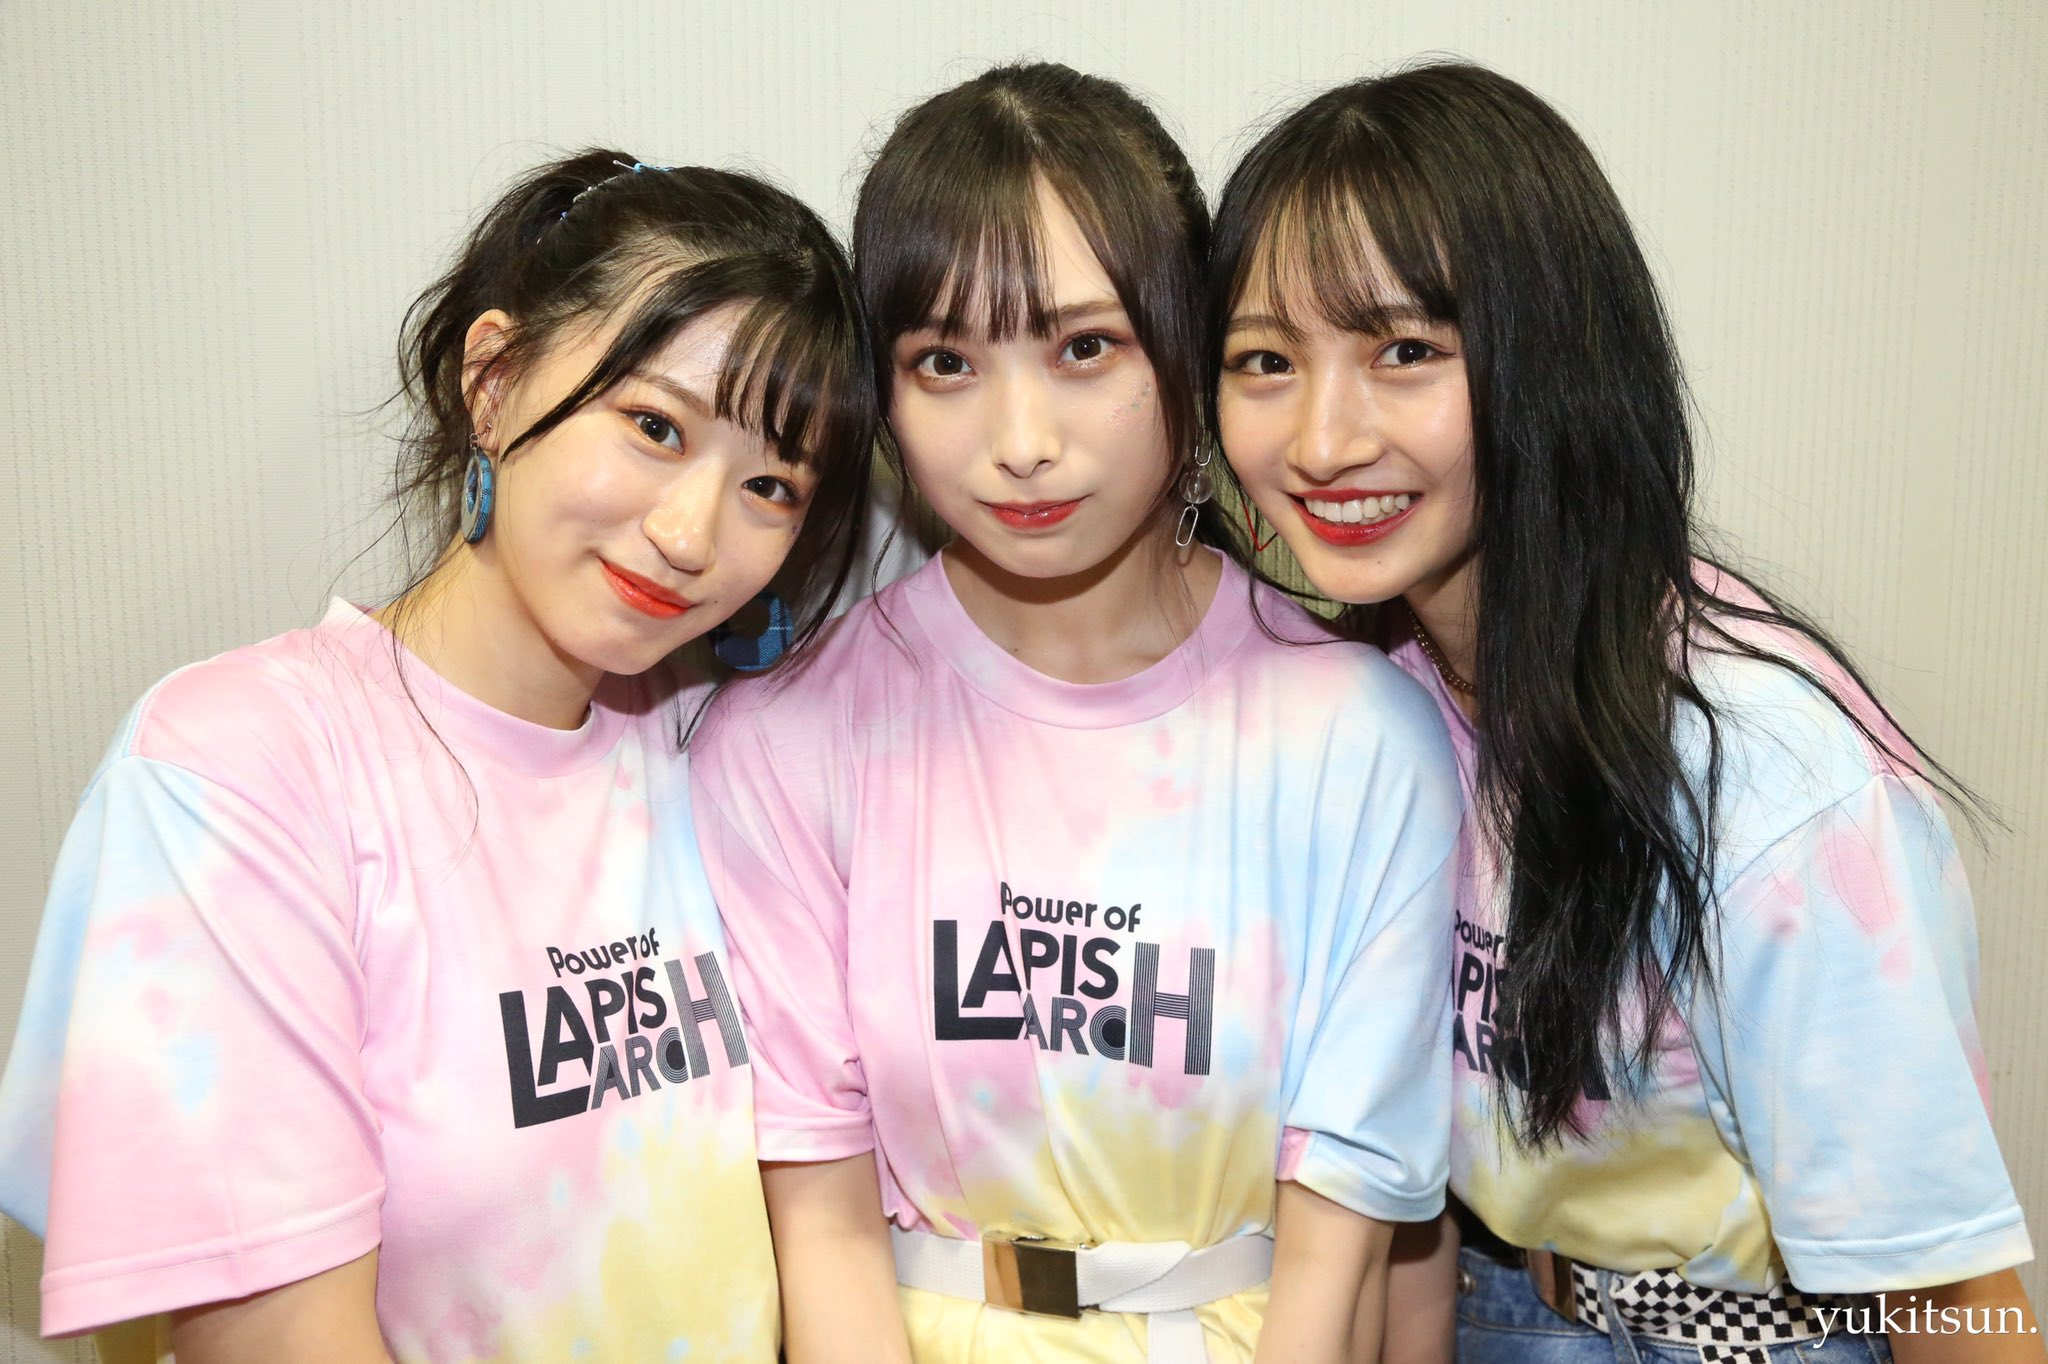 2020.8.21 NMB48 FIRST ONLINE LIVE 2020 ~Power of LAPIS ARCH~